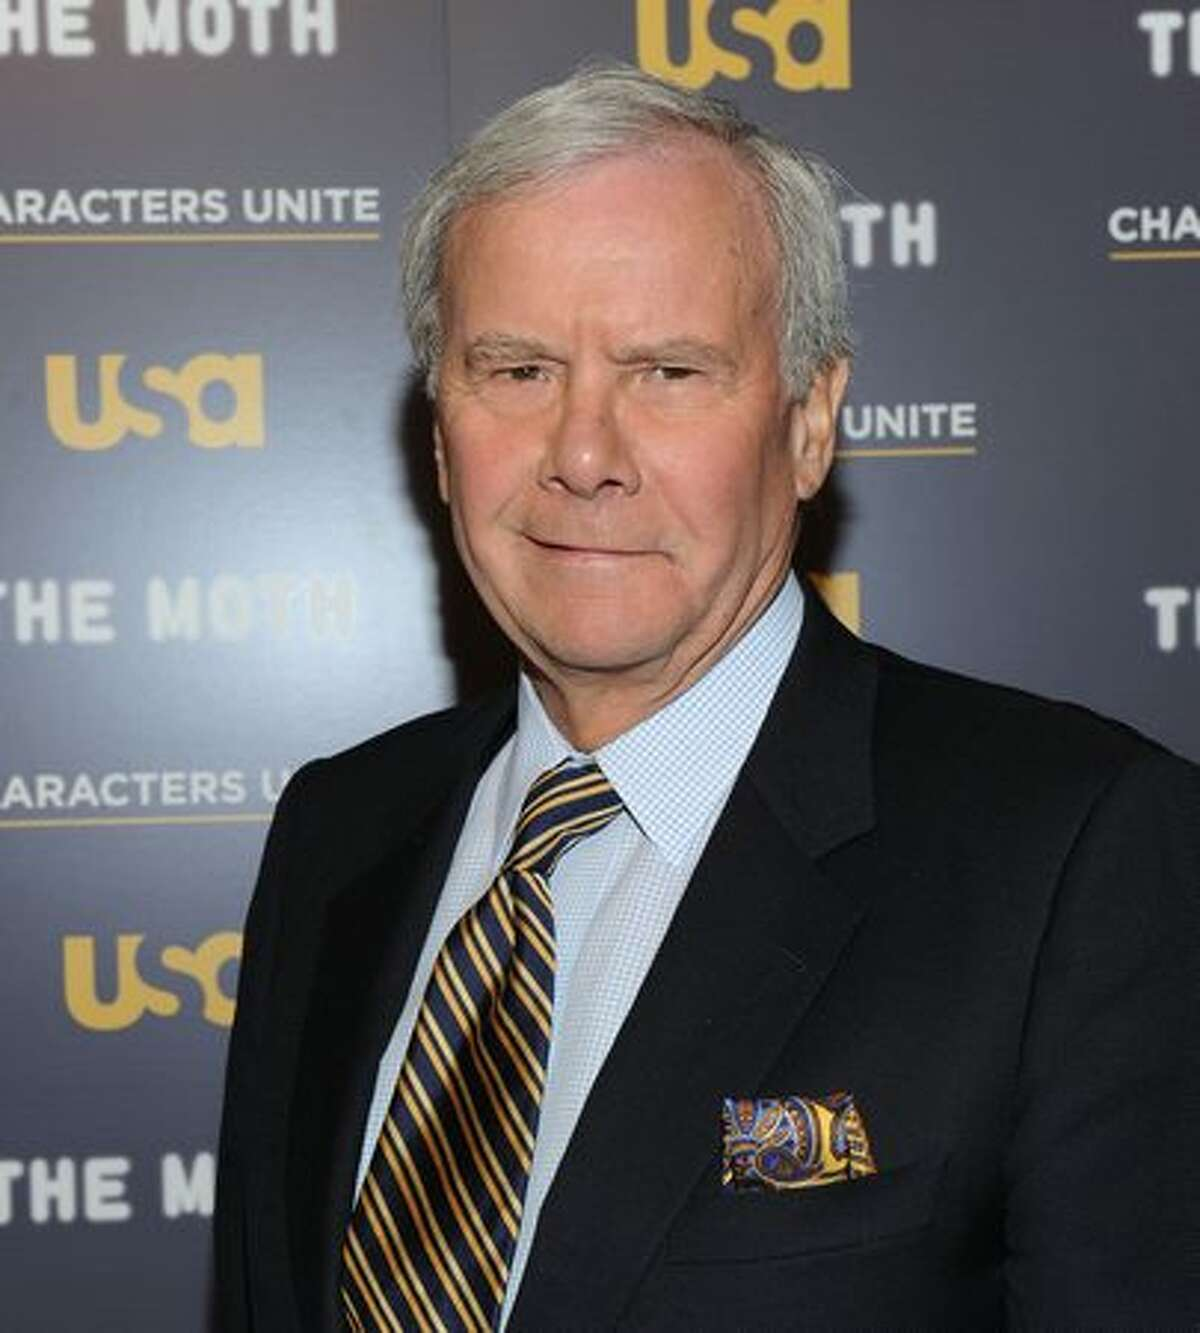 Tom Brokaw, 71.